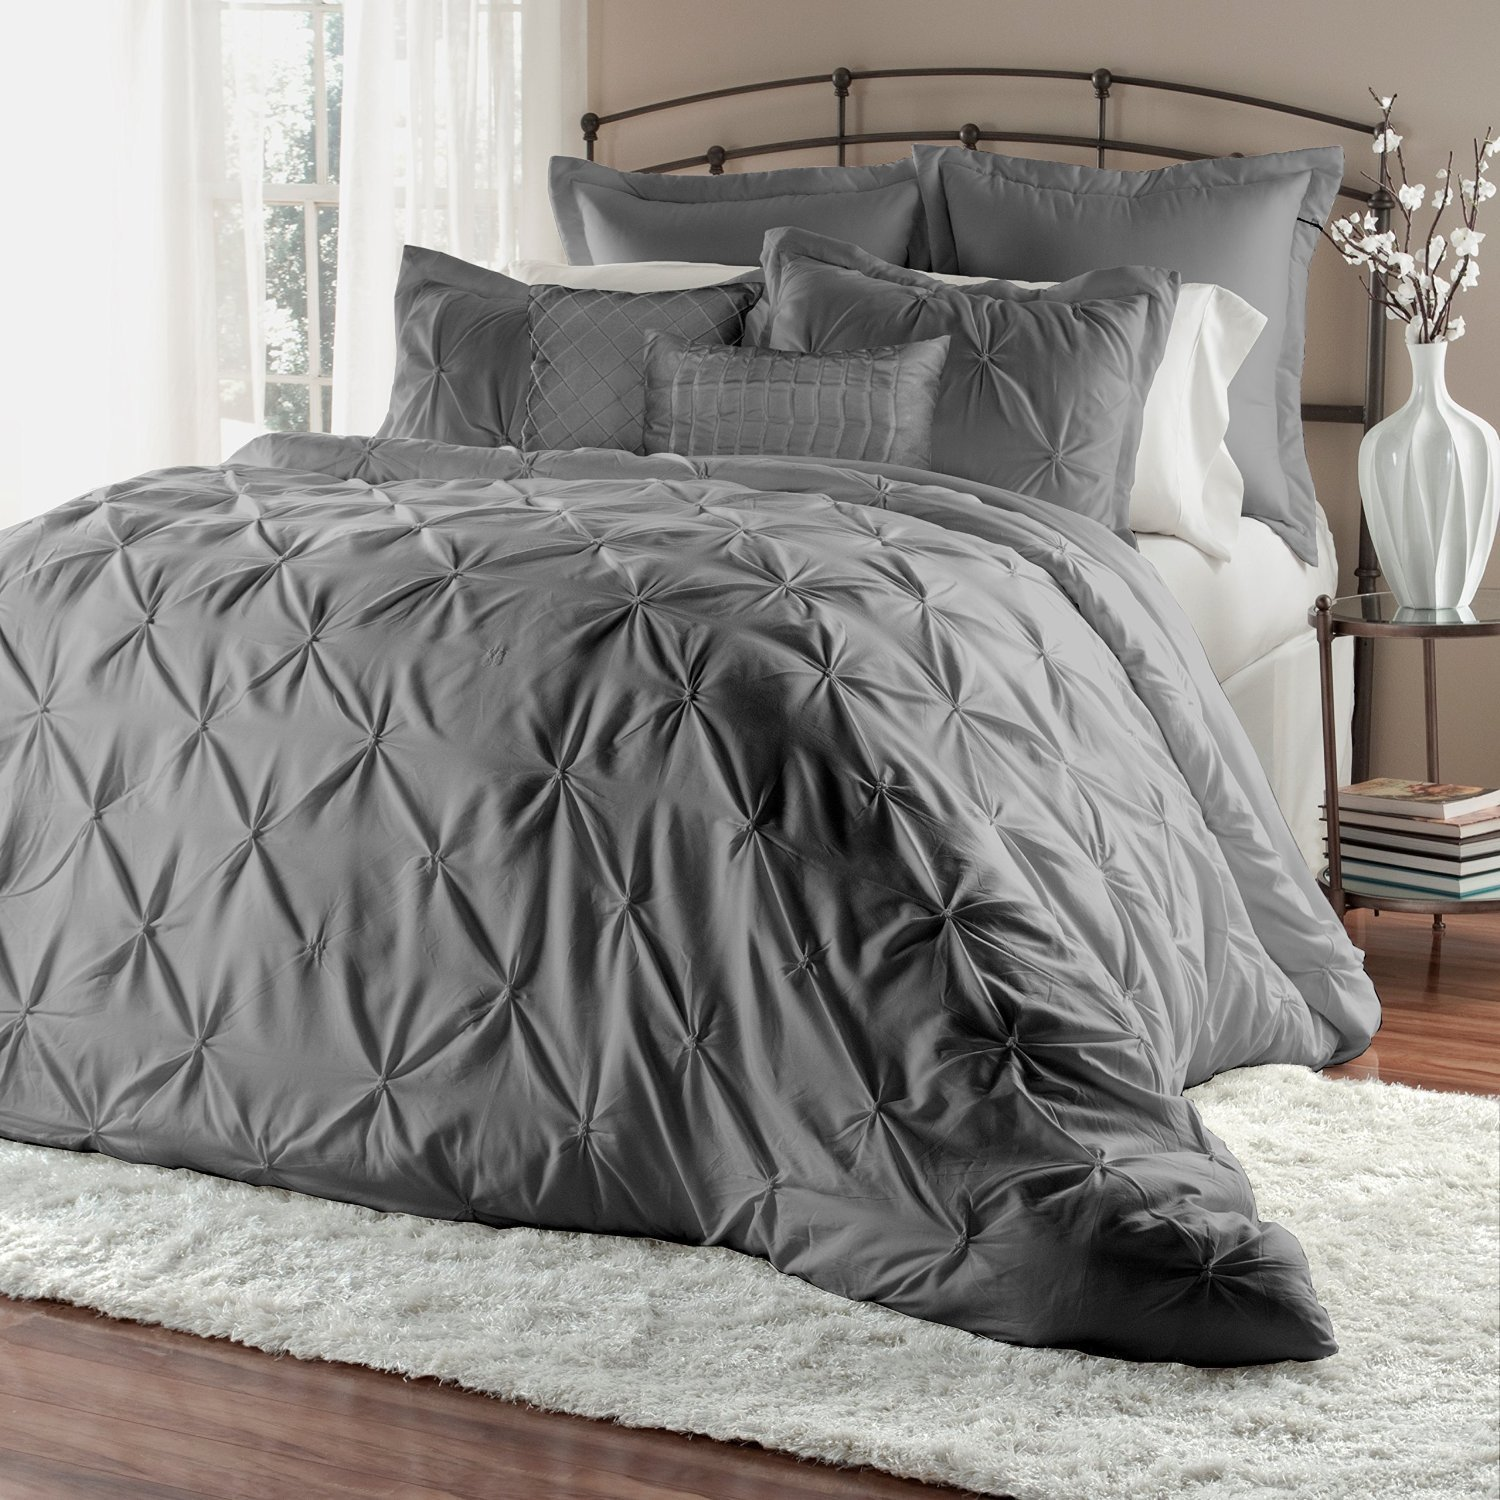 super set comforter best store modern duvet of insert sets fluffiest extra summer fluffy down contemporary navy full size